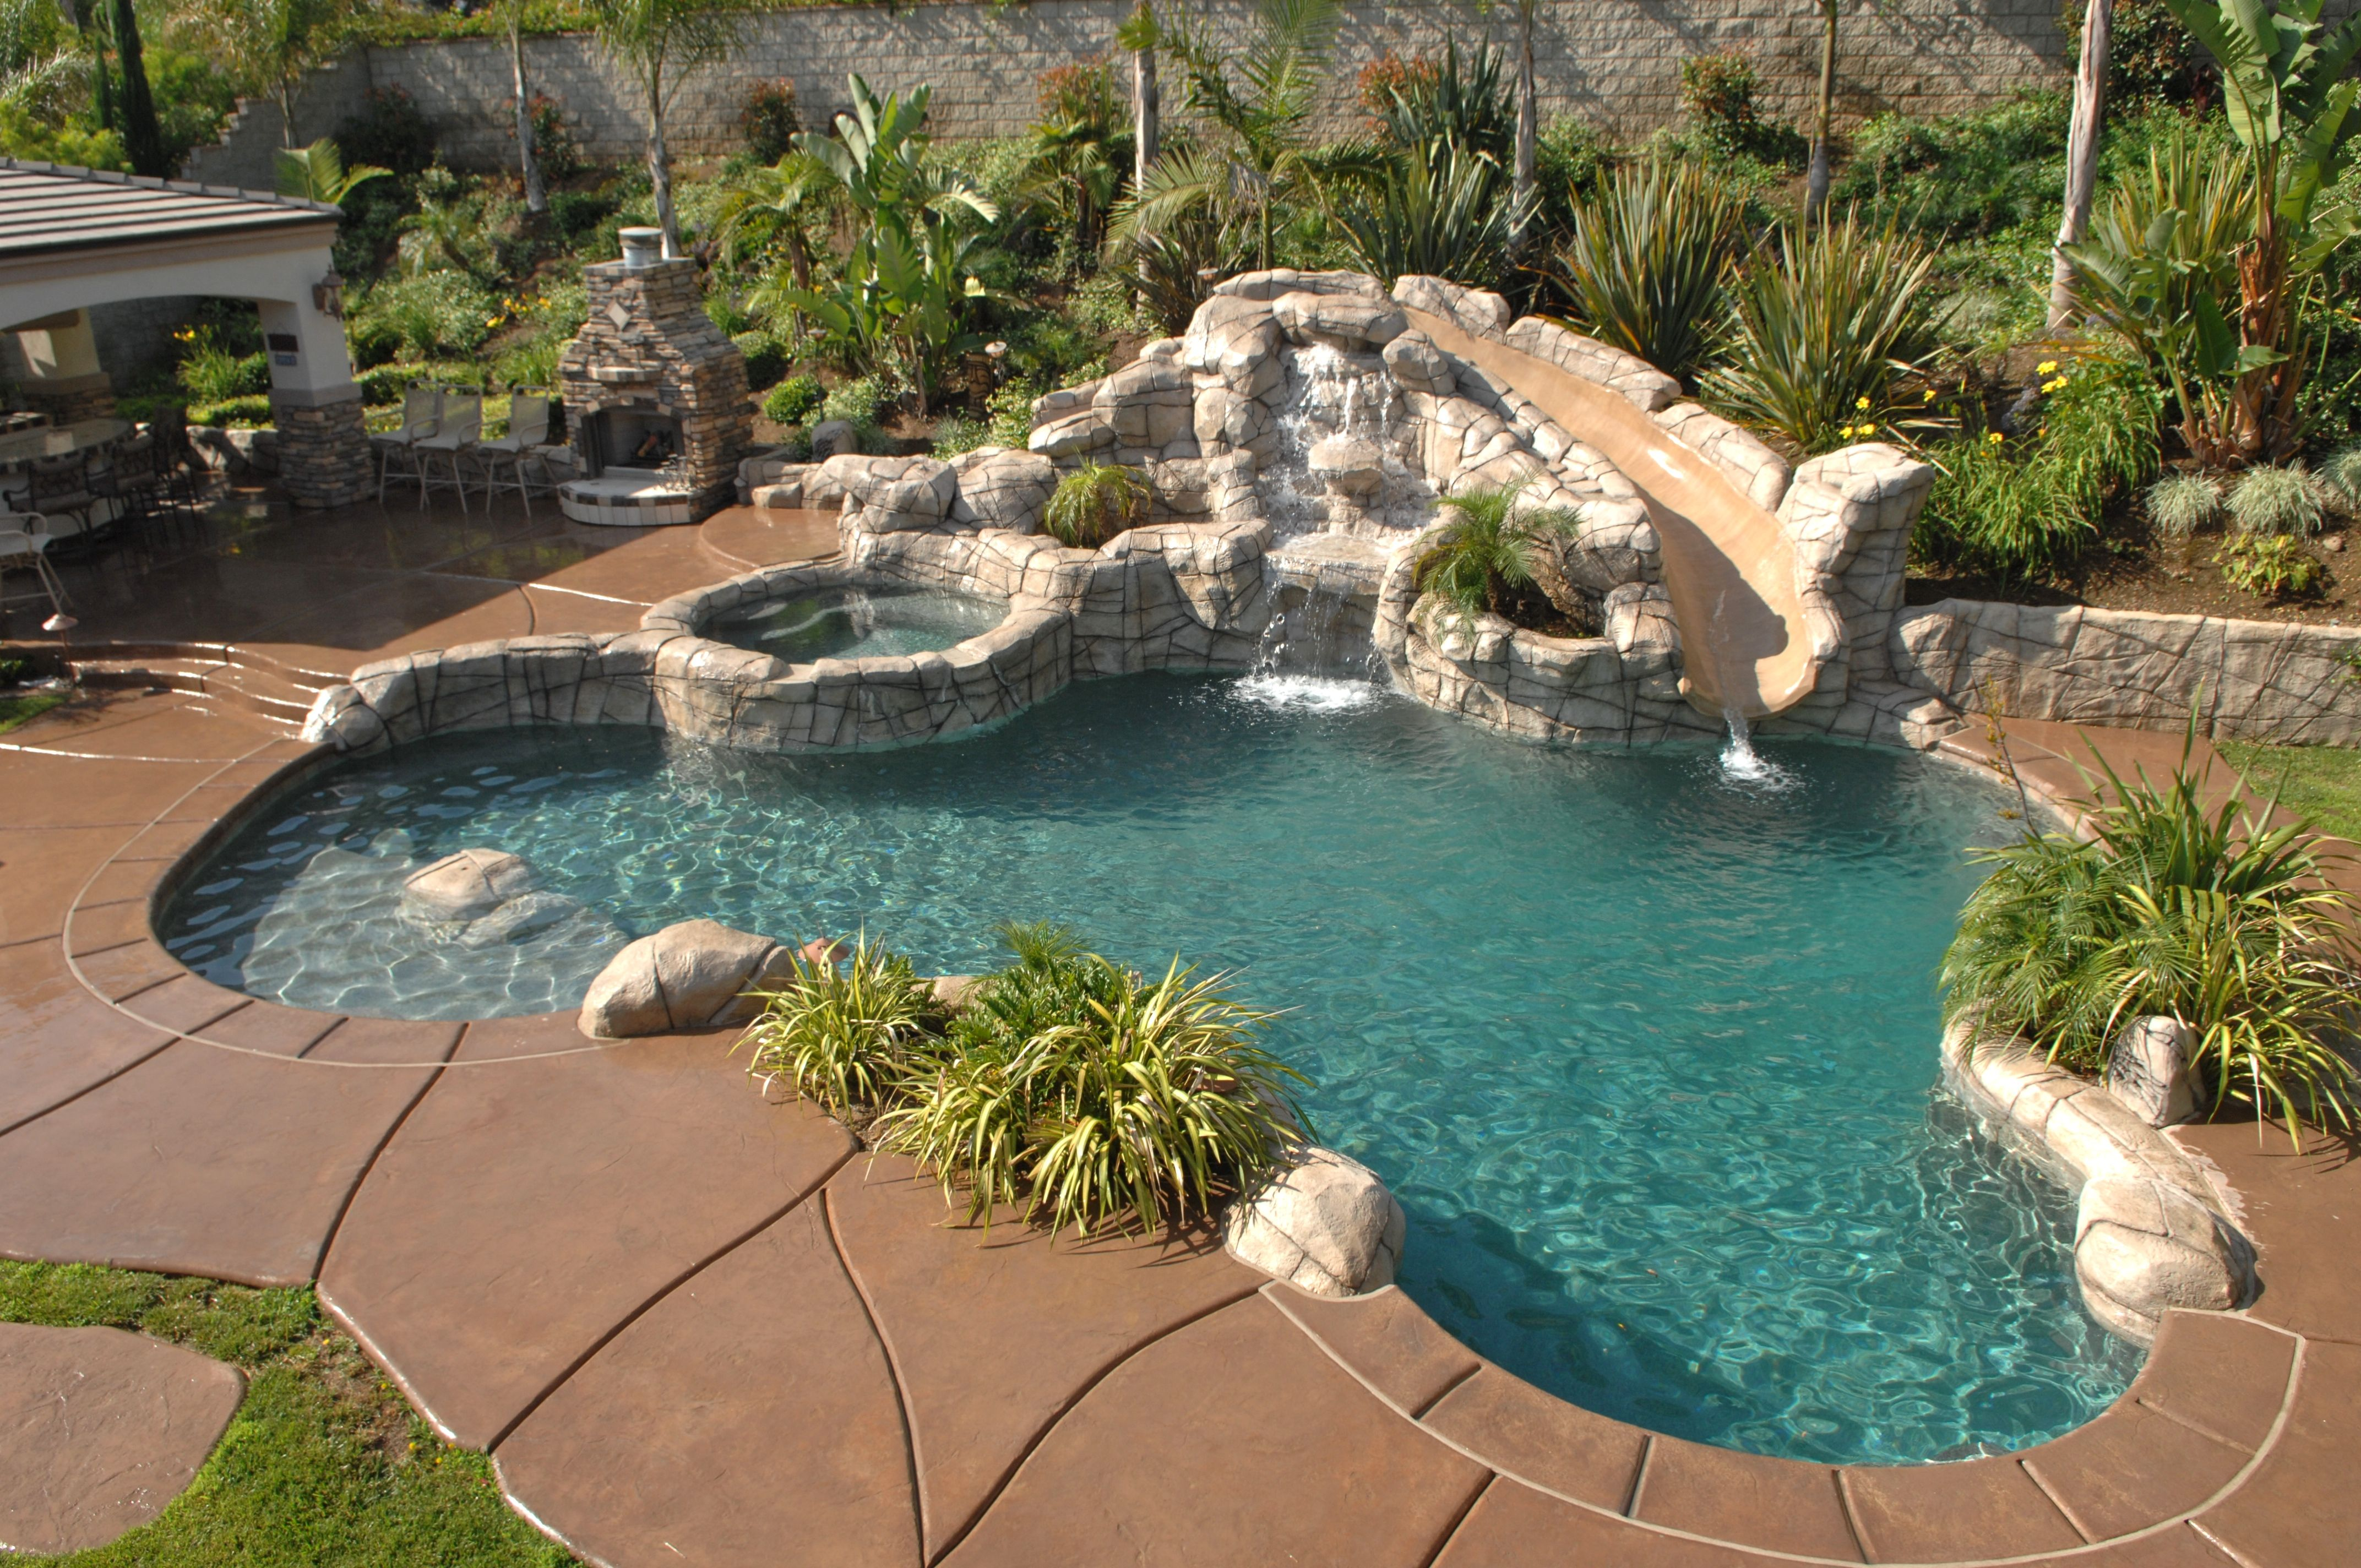 Revitalize Your Eyes With These Luxury Swimming Pool Designs